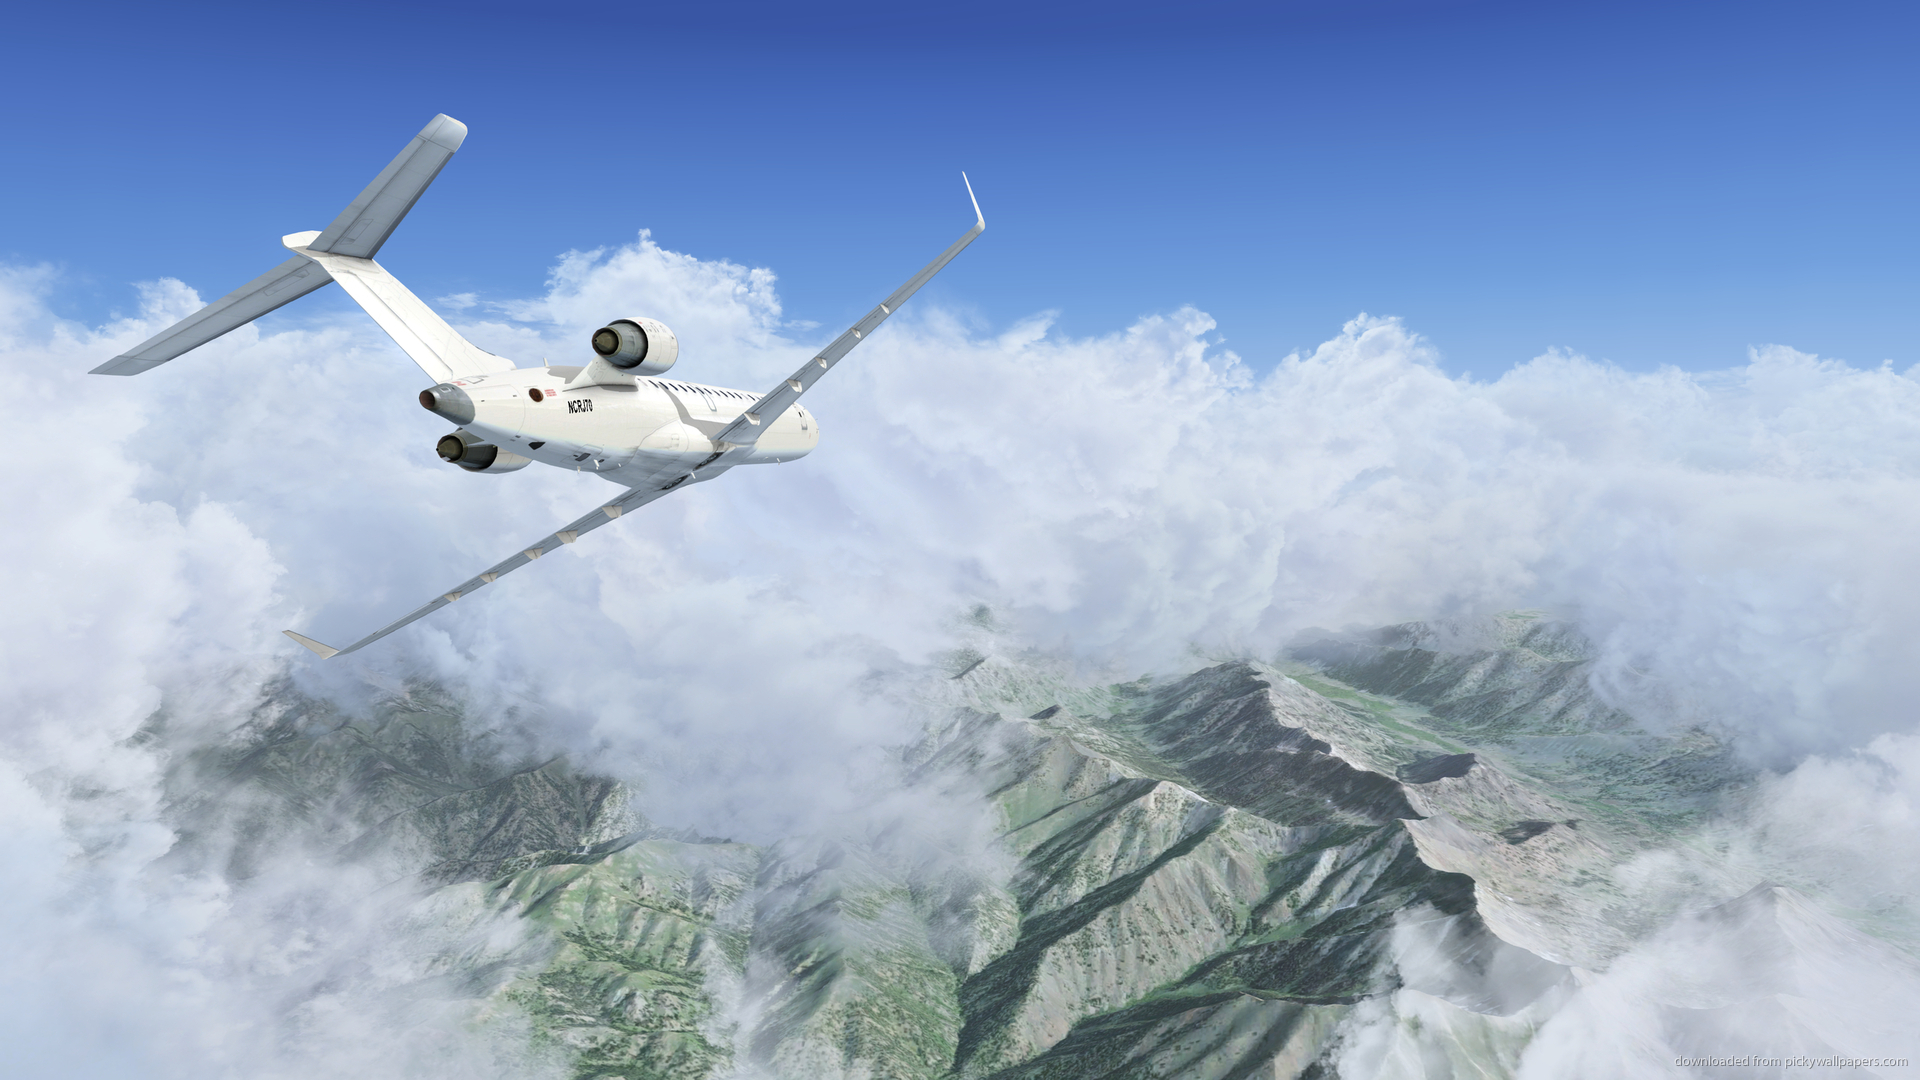 Download 1920x1080 Flight Simulator X Wallpaper 1920x1080